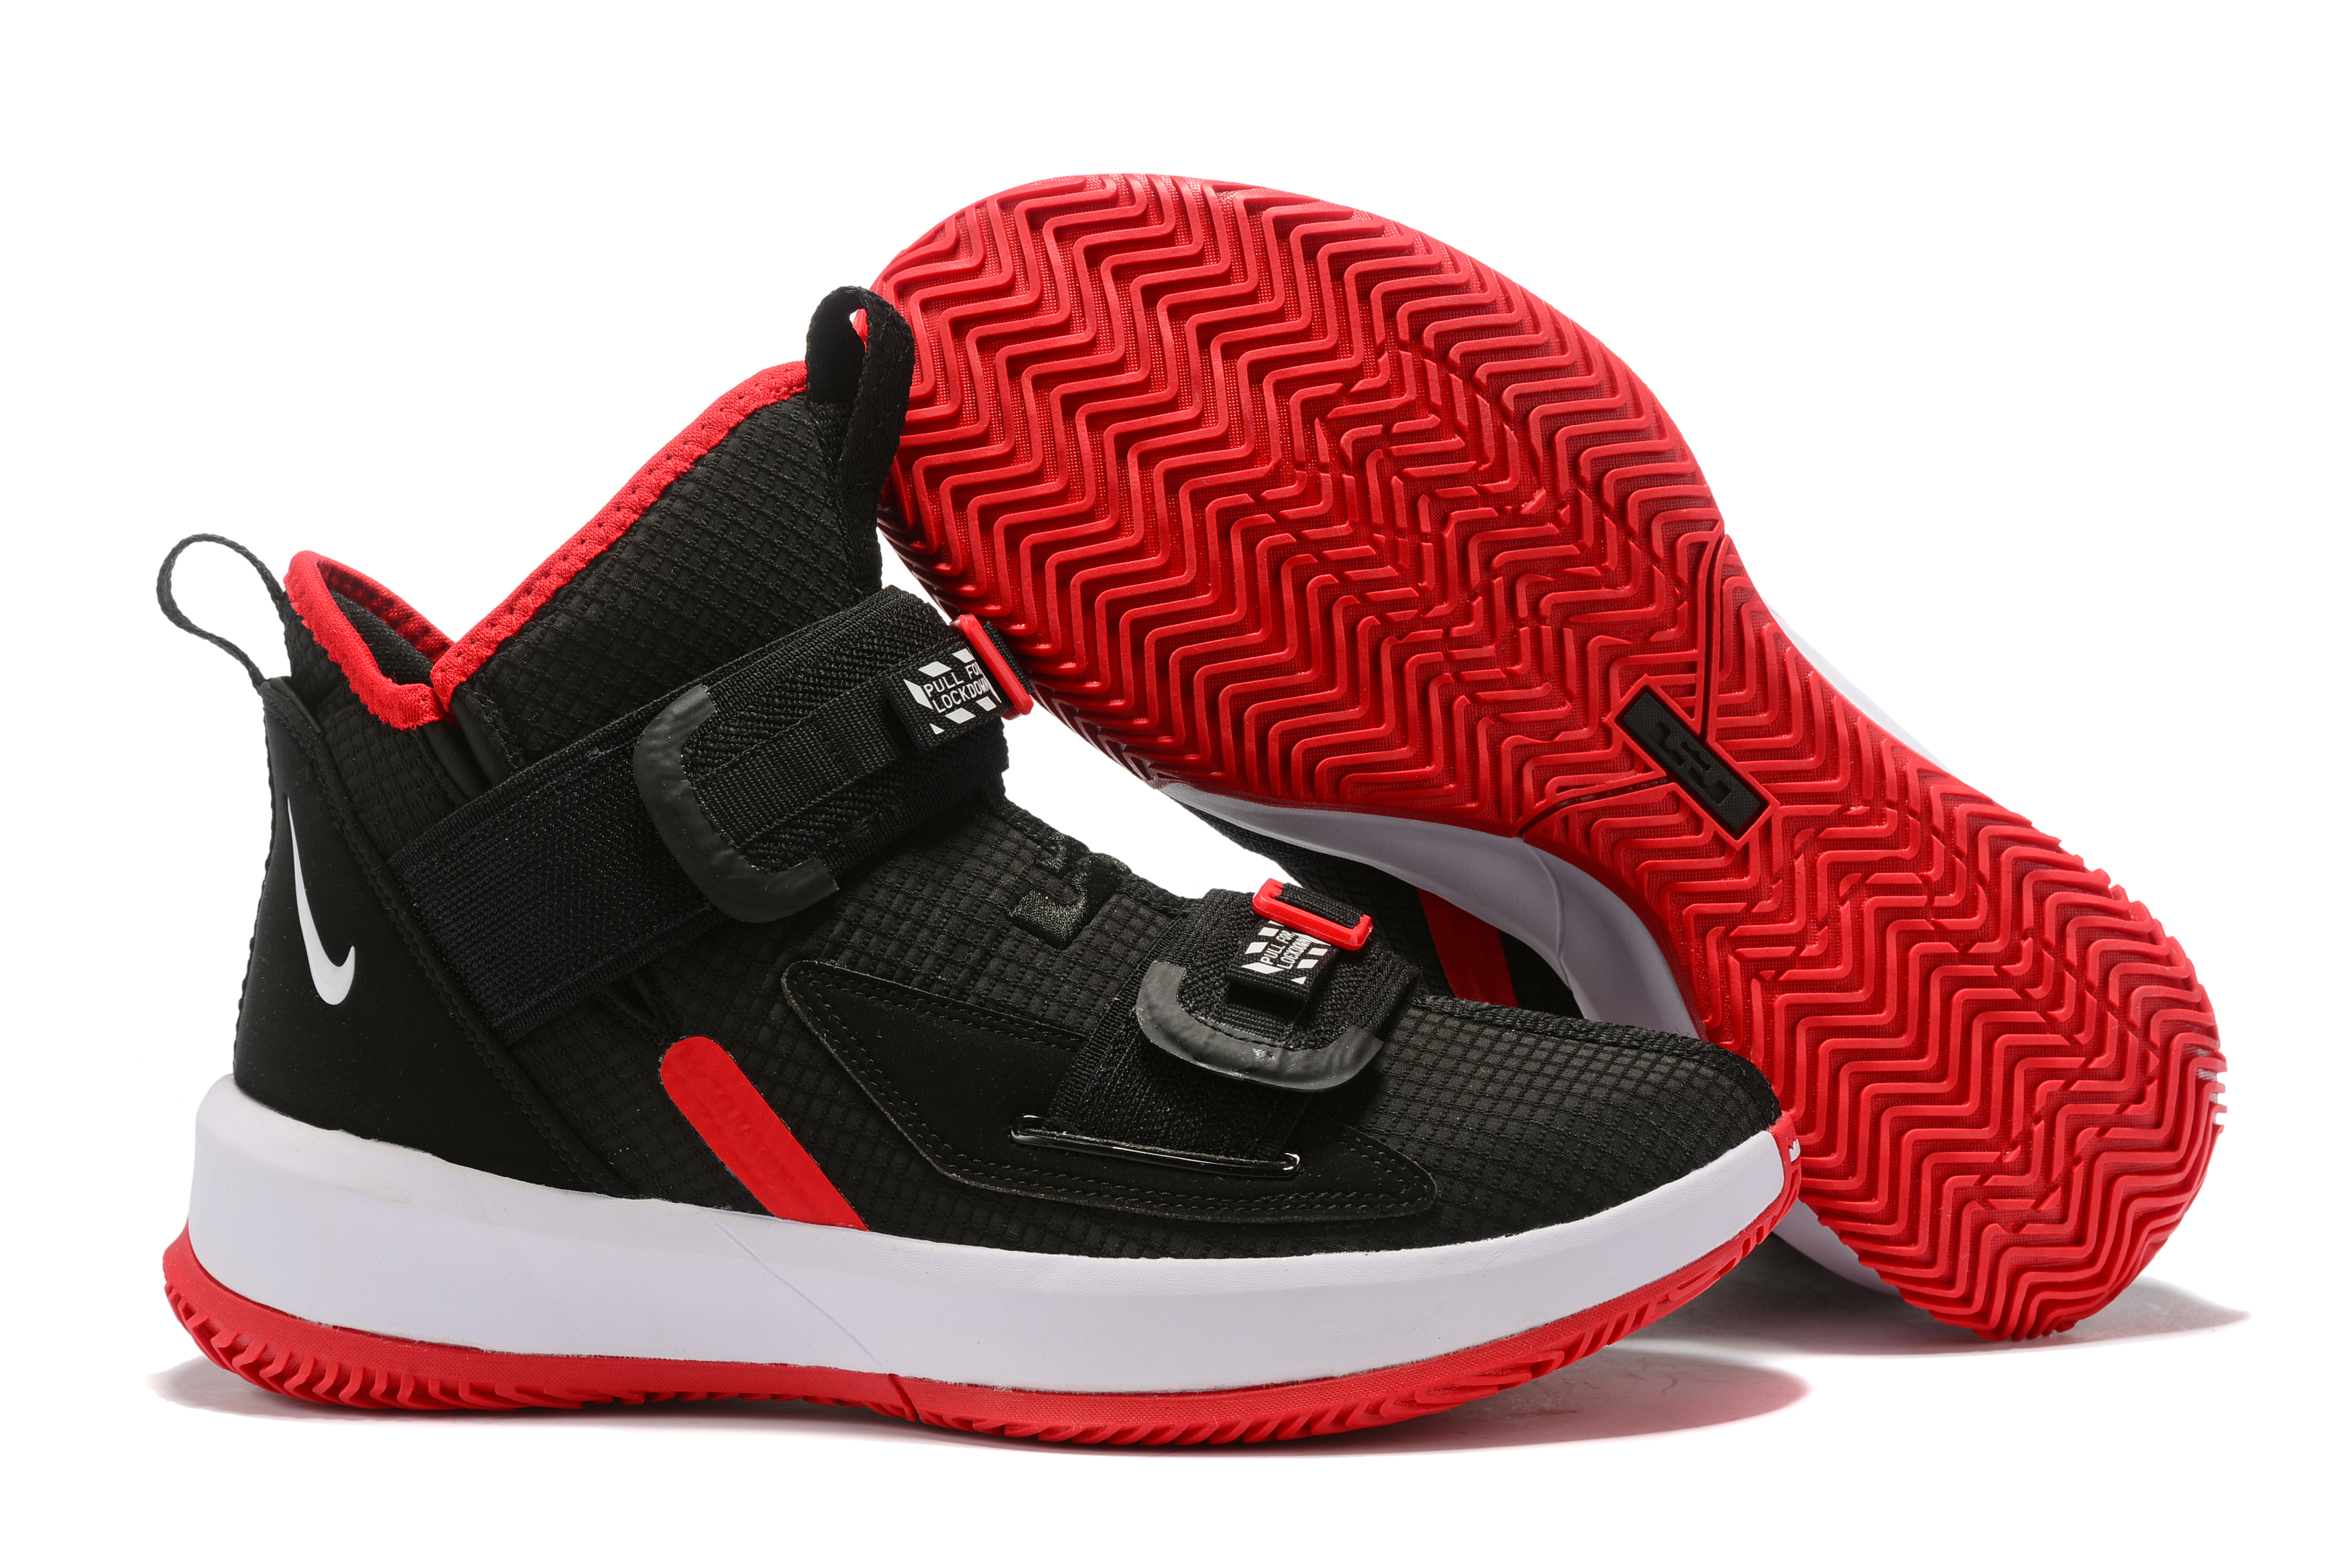 Nike Lebron Solider 13 Black Red Shoes